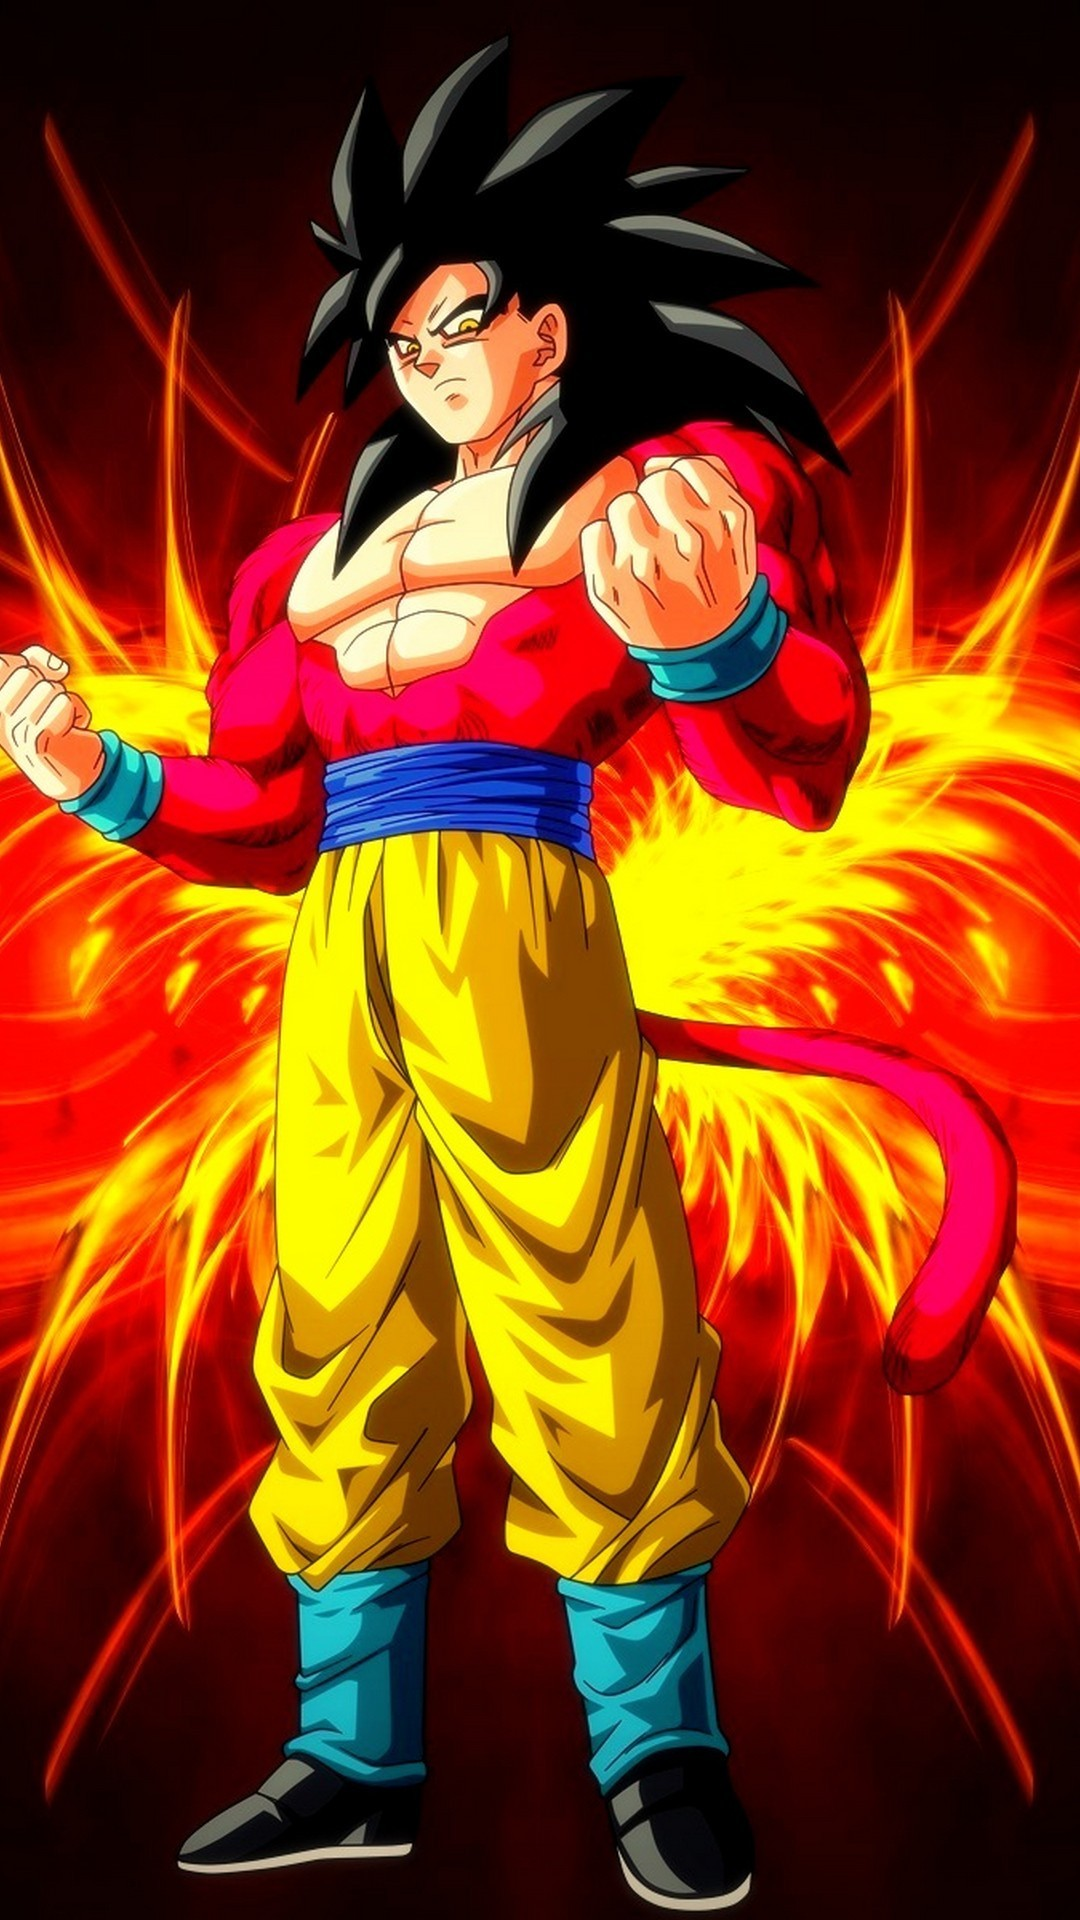 Res: 1080x1920, iPhone 8 Wallpaper Goku SSJ4 with image resolution  pixel. You can  make this wallpaper